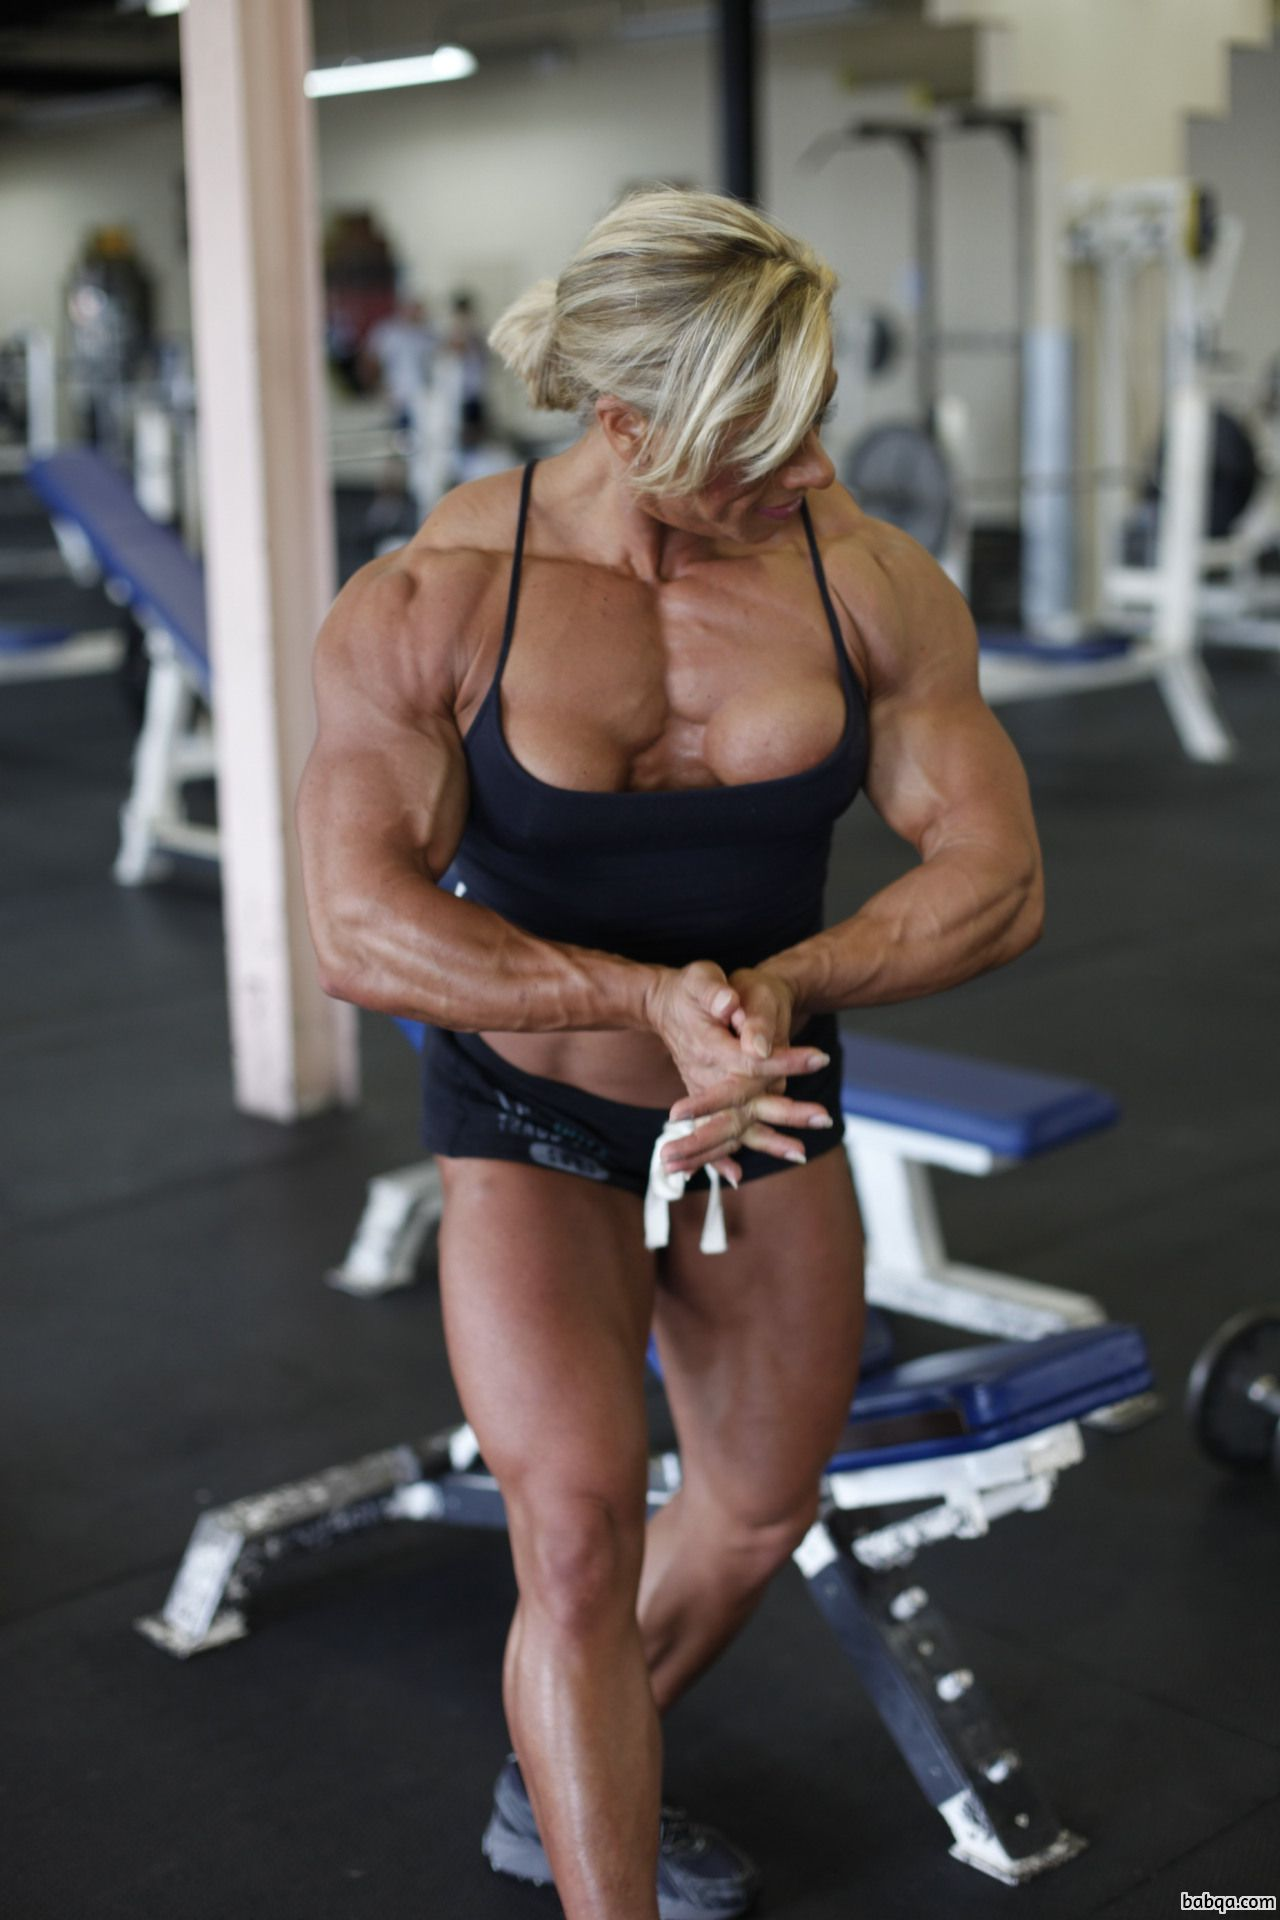 hot female bodybuilder with strong body and toned booty pic from g+